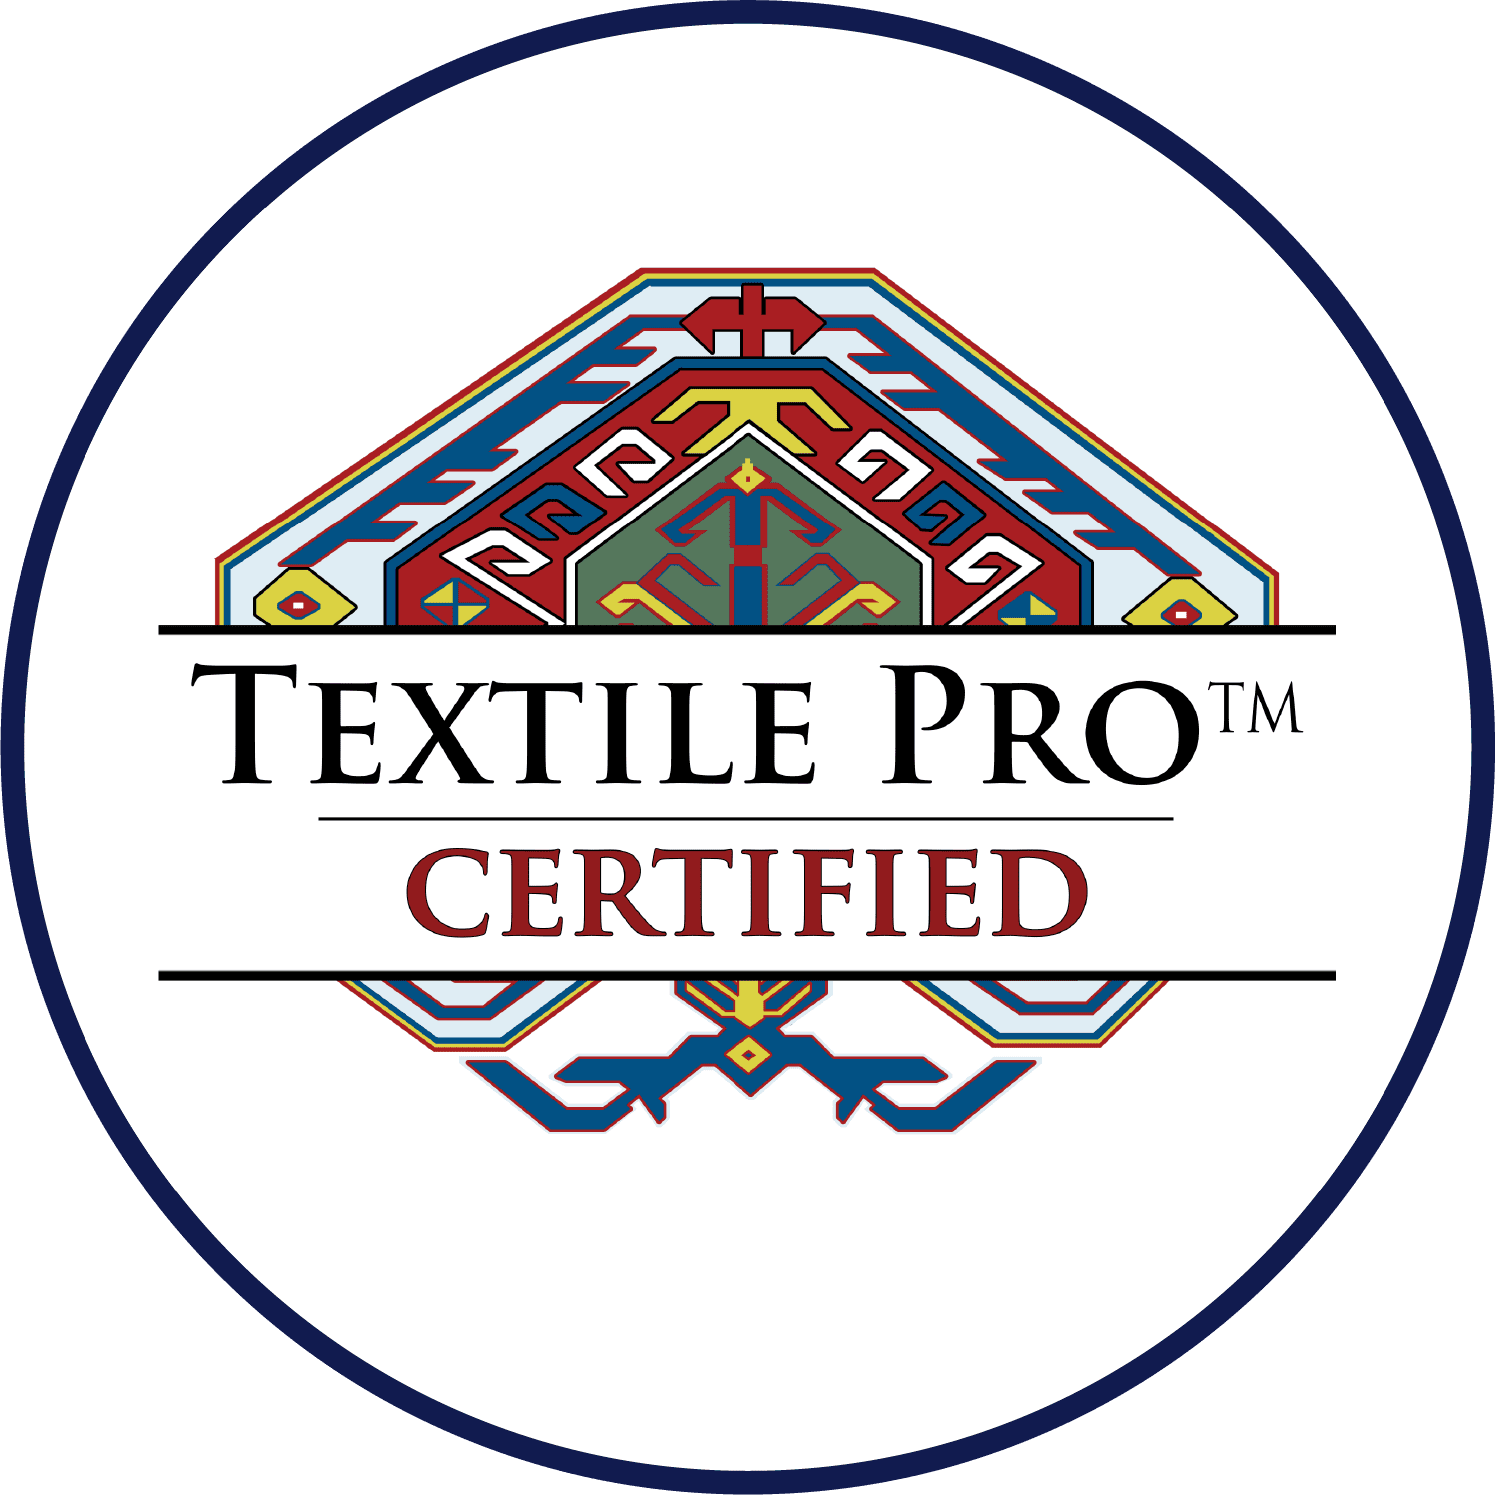 Certified Textile Pro logo